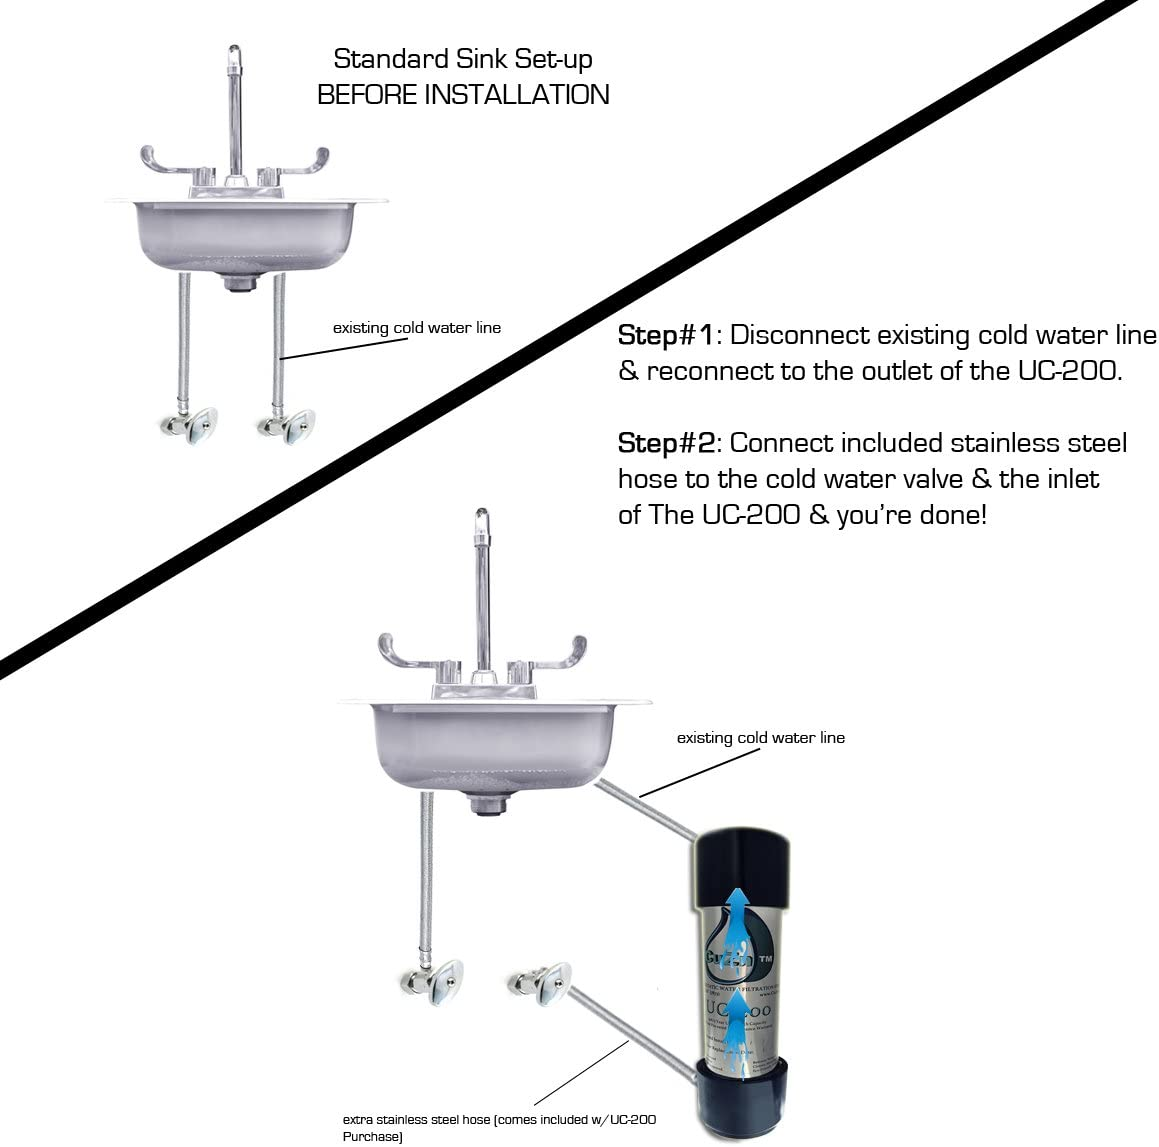 CuZn UC-200 Under Counter Water Filter installation instruction